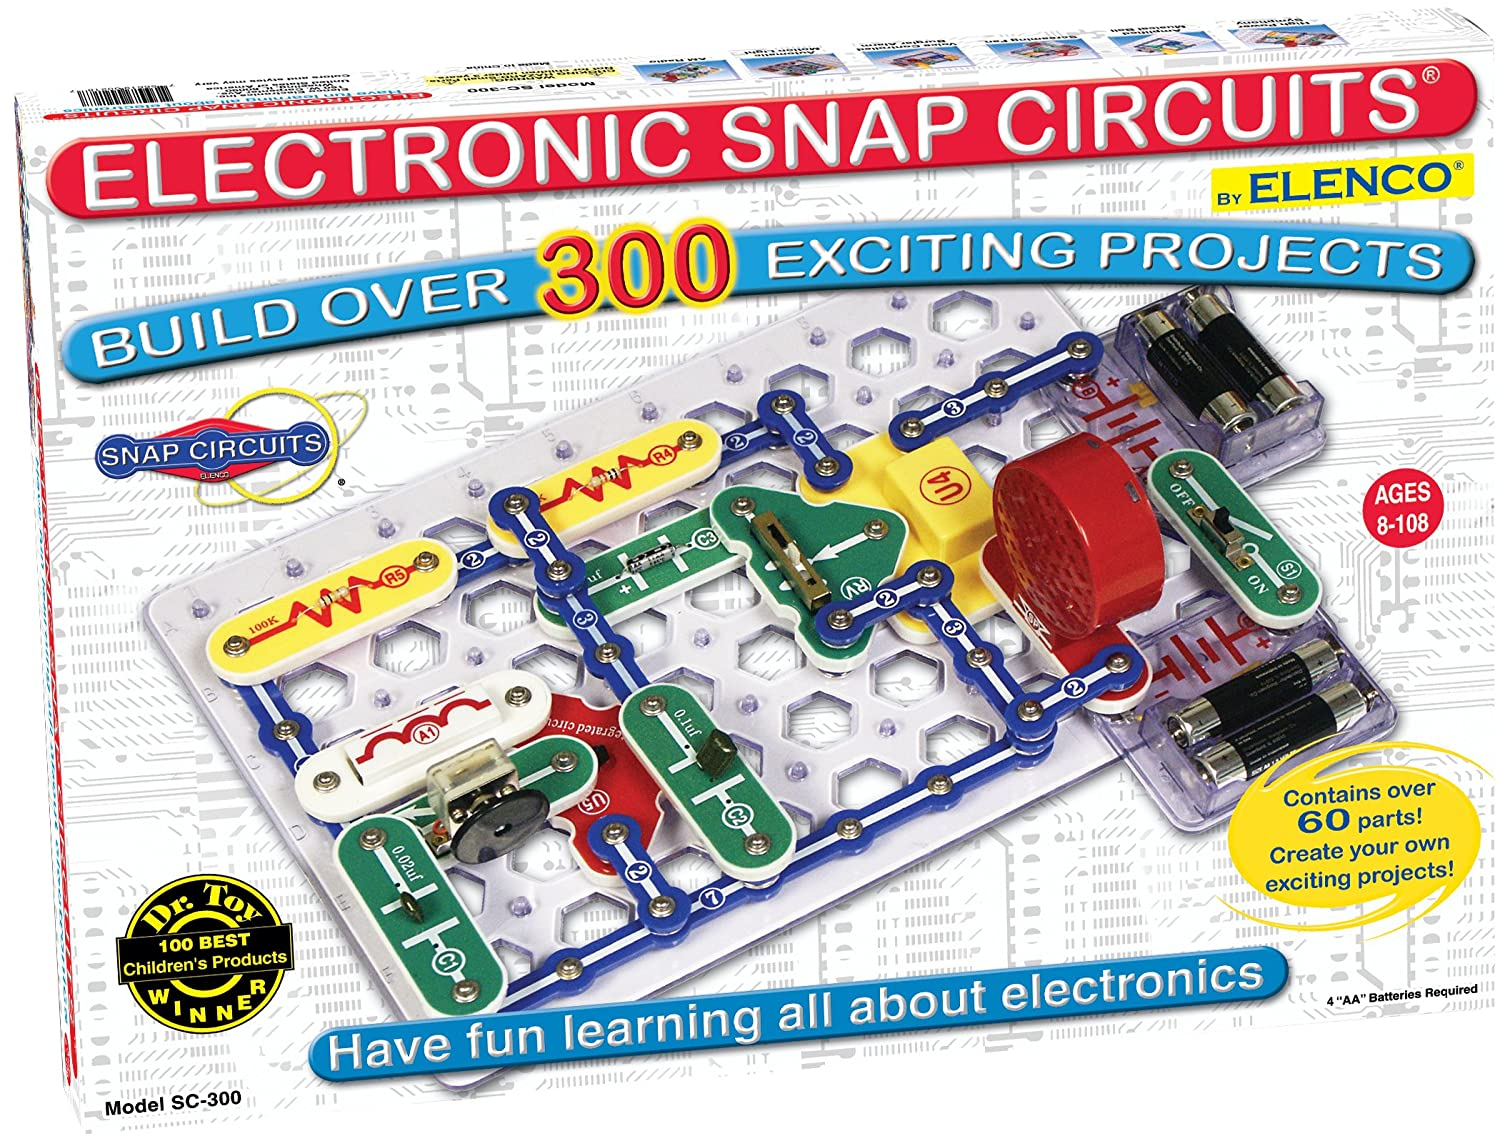 Snap Circuits Classic Sc 300 Electronics Exploration Kit Make Simple Logic Circuit Design Projects Over Stem 4 Color Project Manual 60 Modules Unlimited Fun